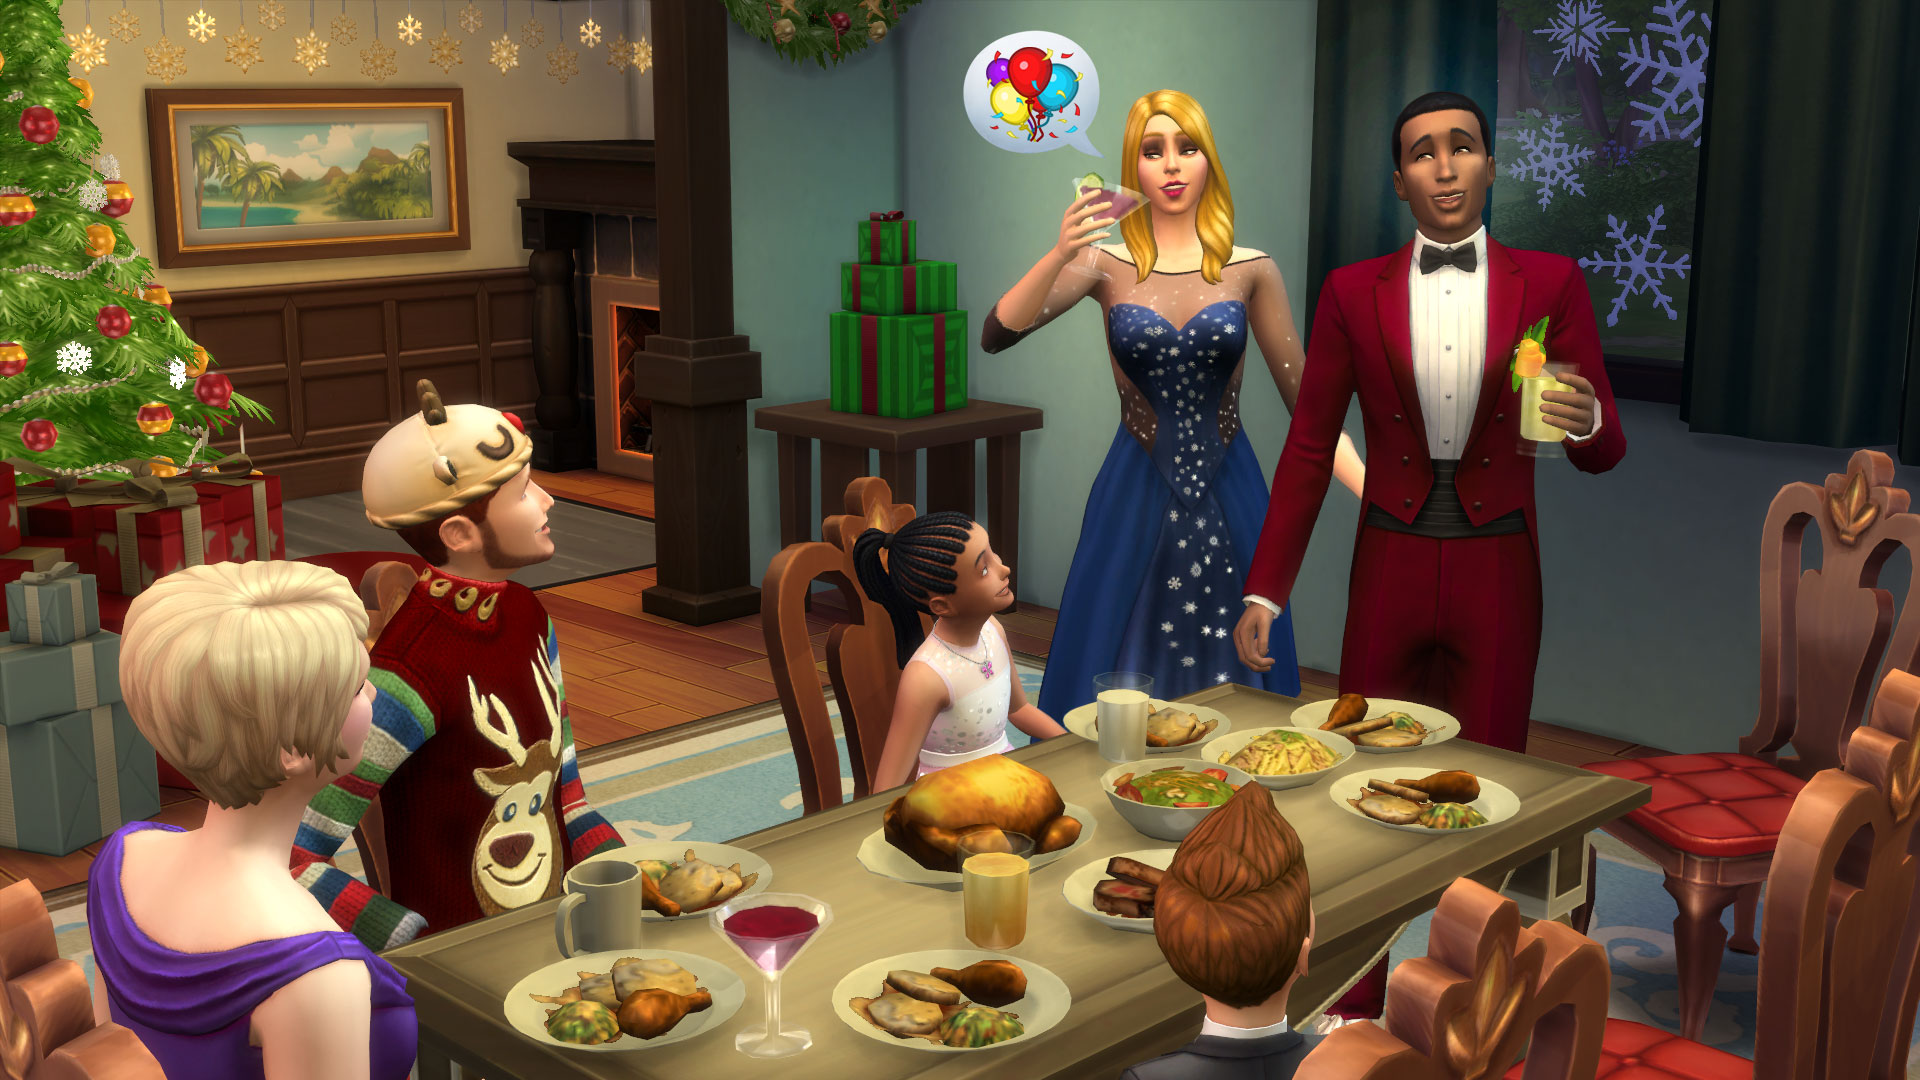 The Sims - Celebrate the Holidays With New Items in The Sims 4 ...